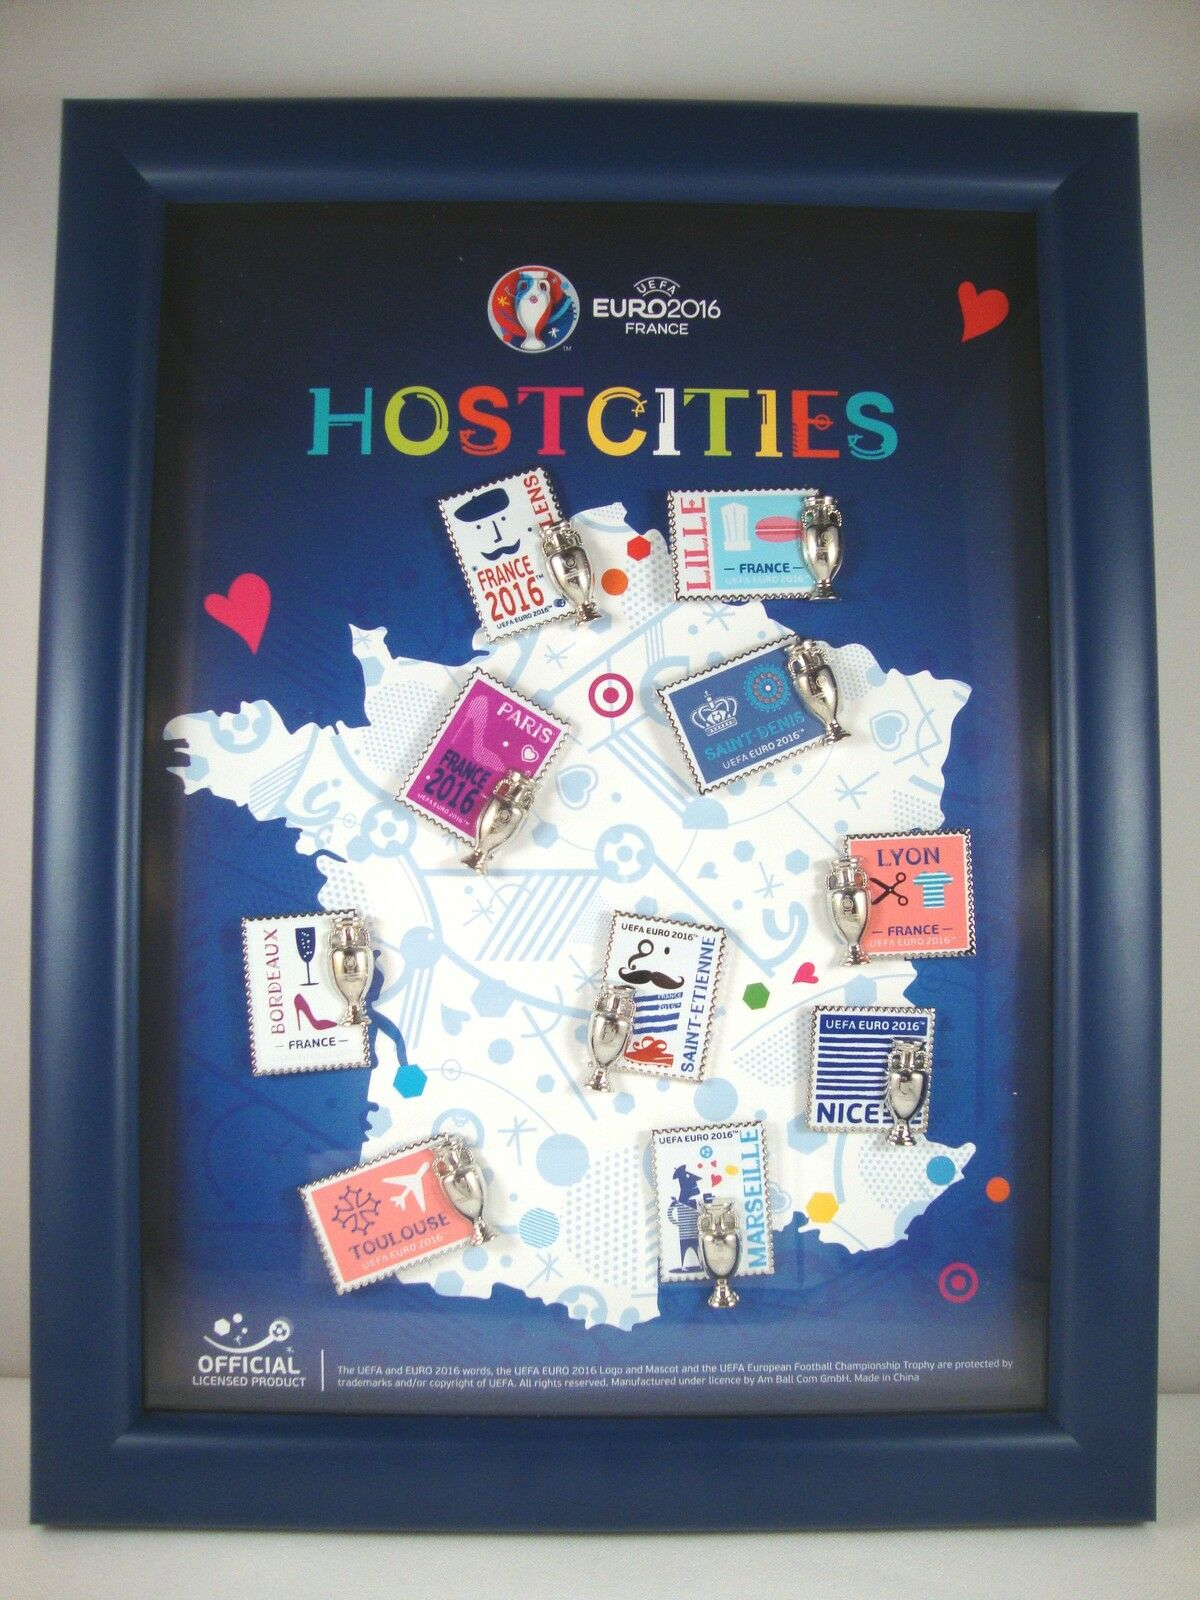 EM Pinrahmen    Hostcities  UEFA Euro France 2016 tm Pin Set Host Cities Städte f276bb